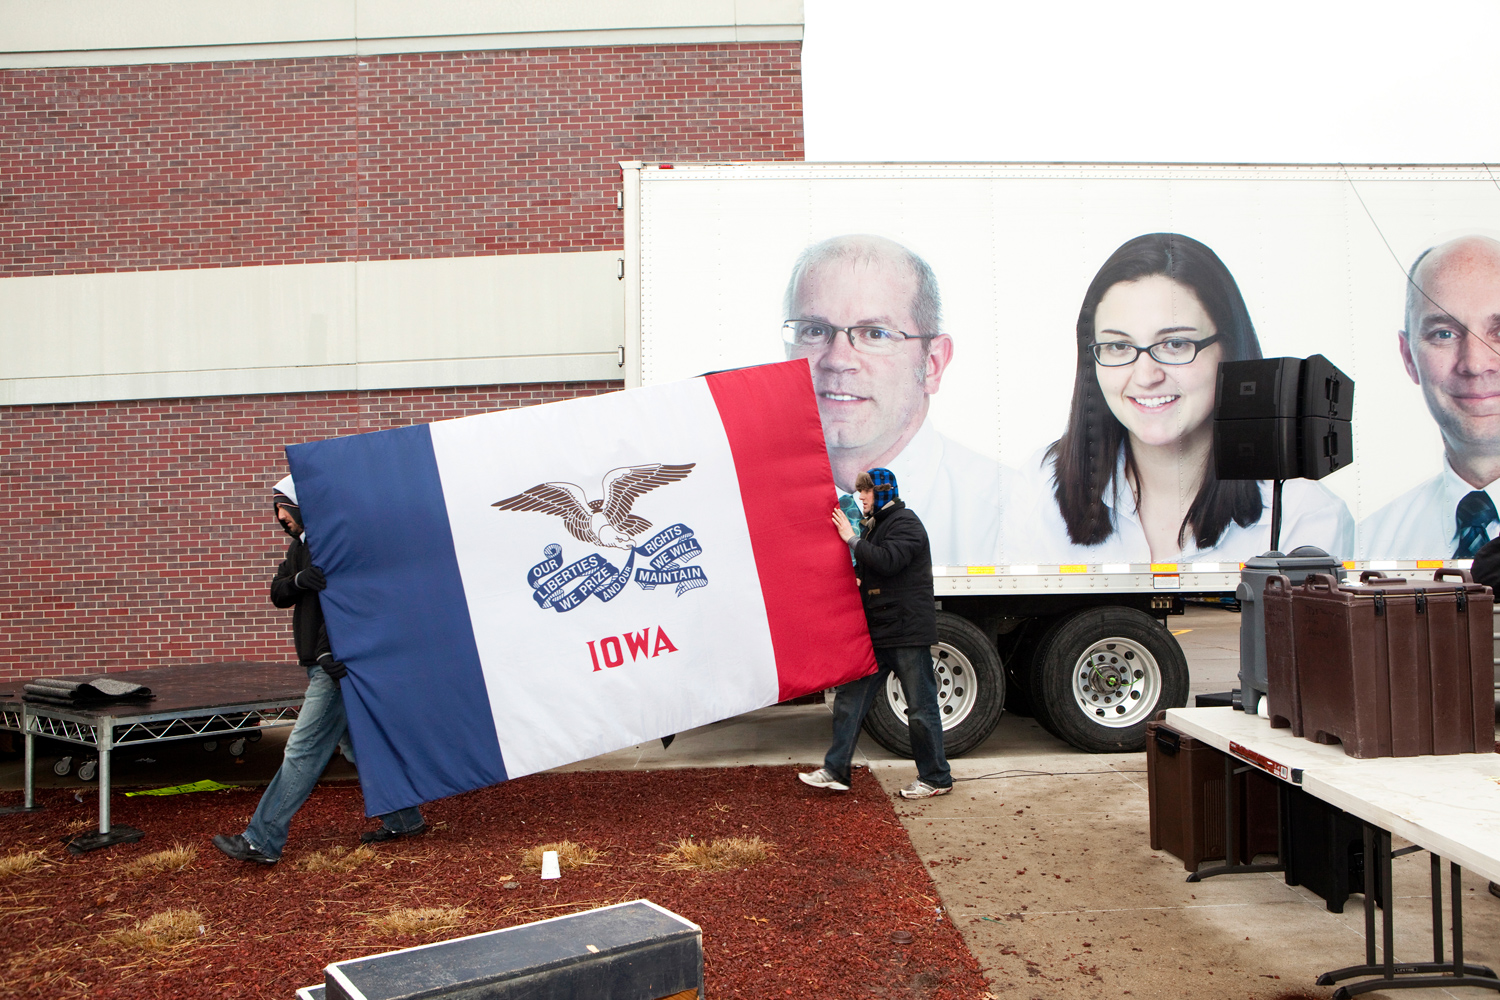 Mitt Romney supporters break down the set after a campaign event in Des Moines, Iowa on December 30, 2011.